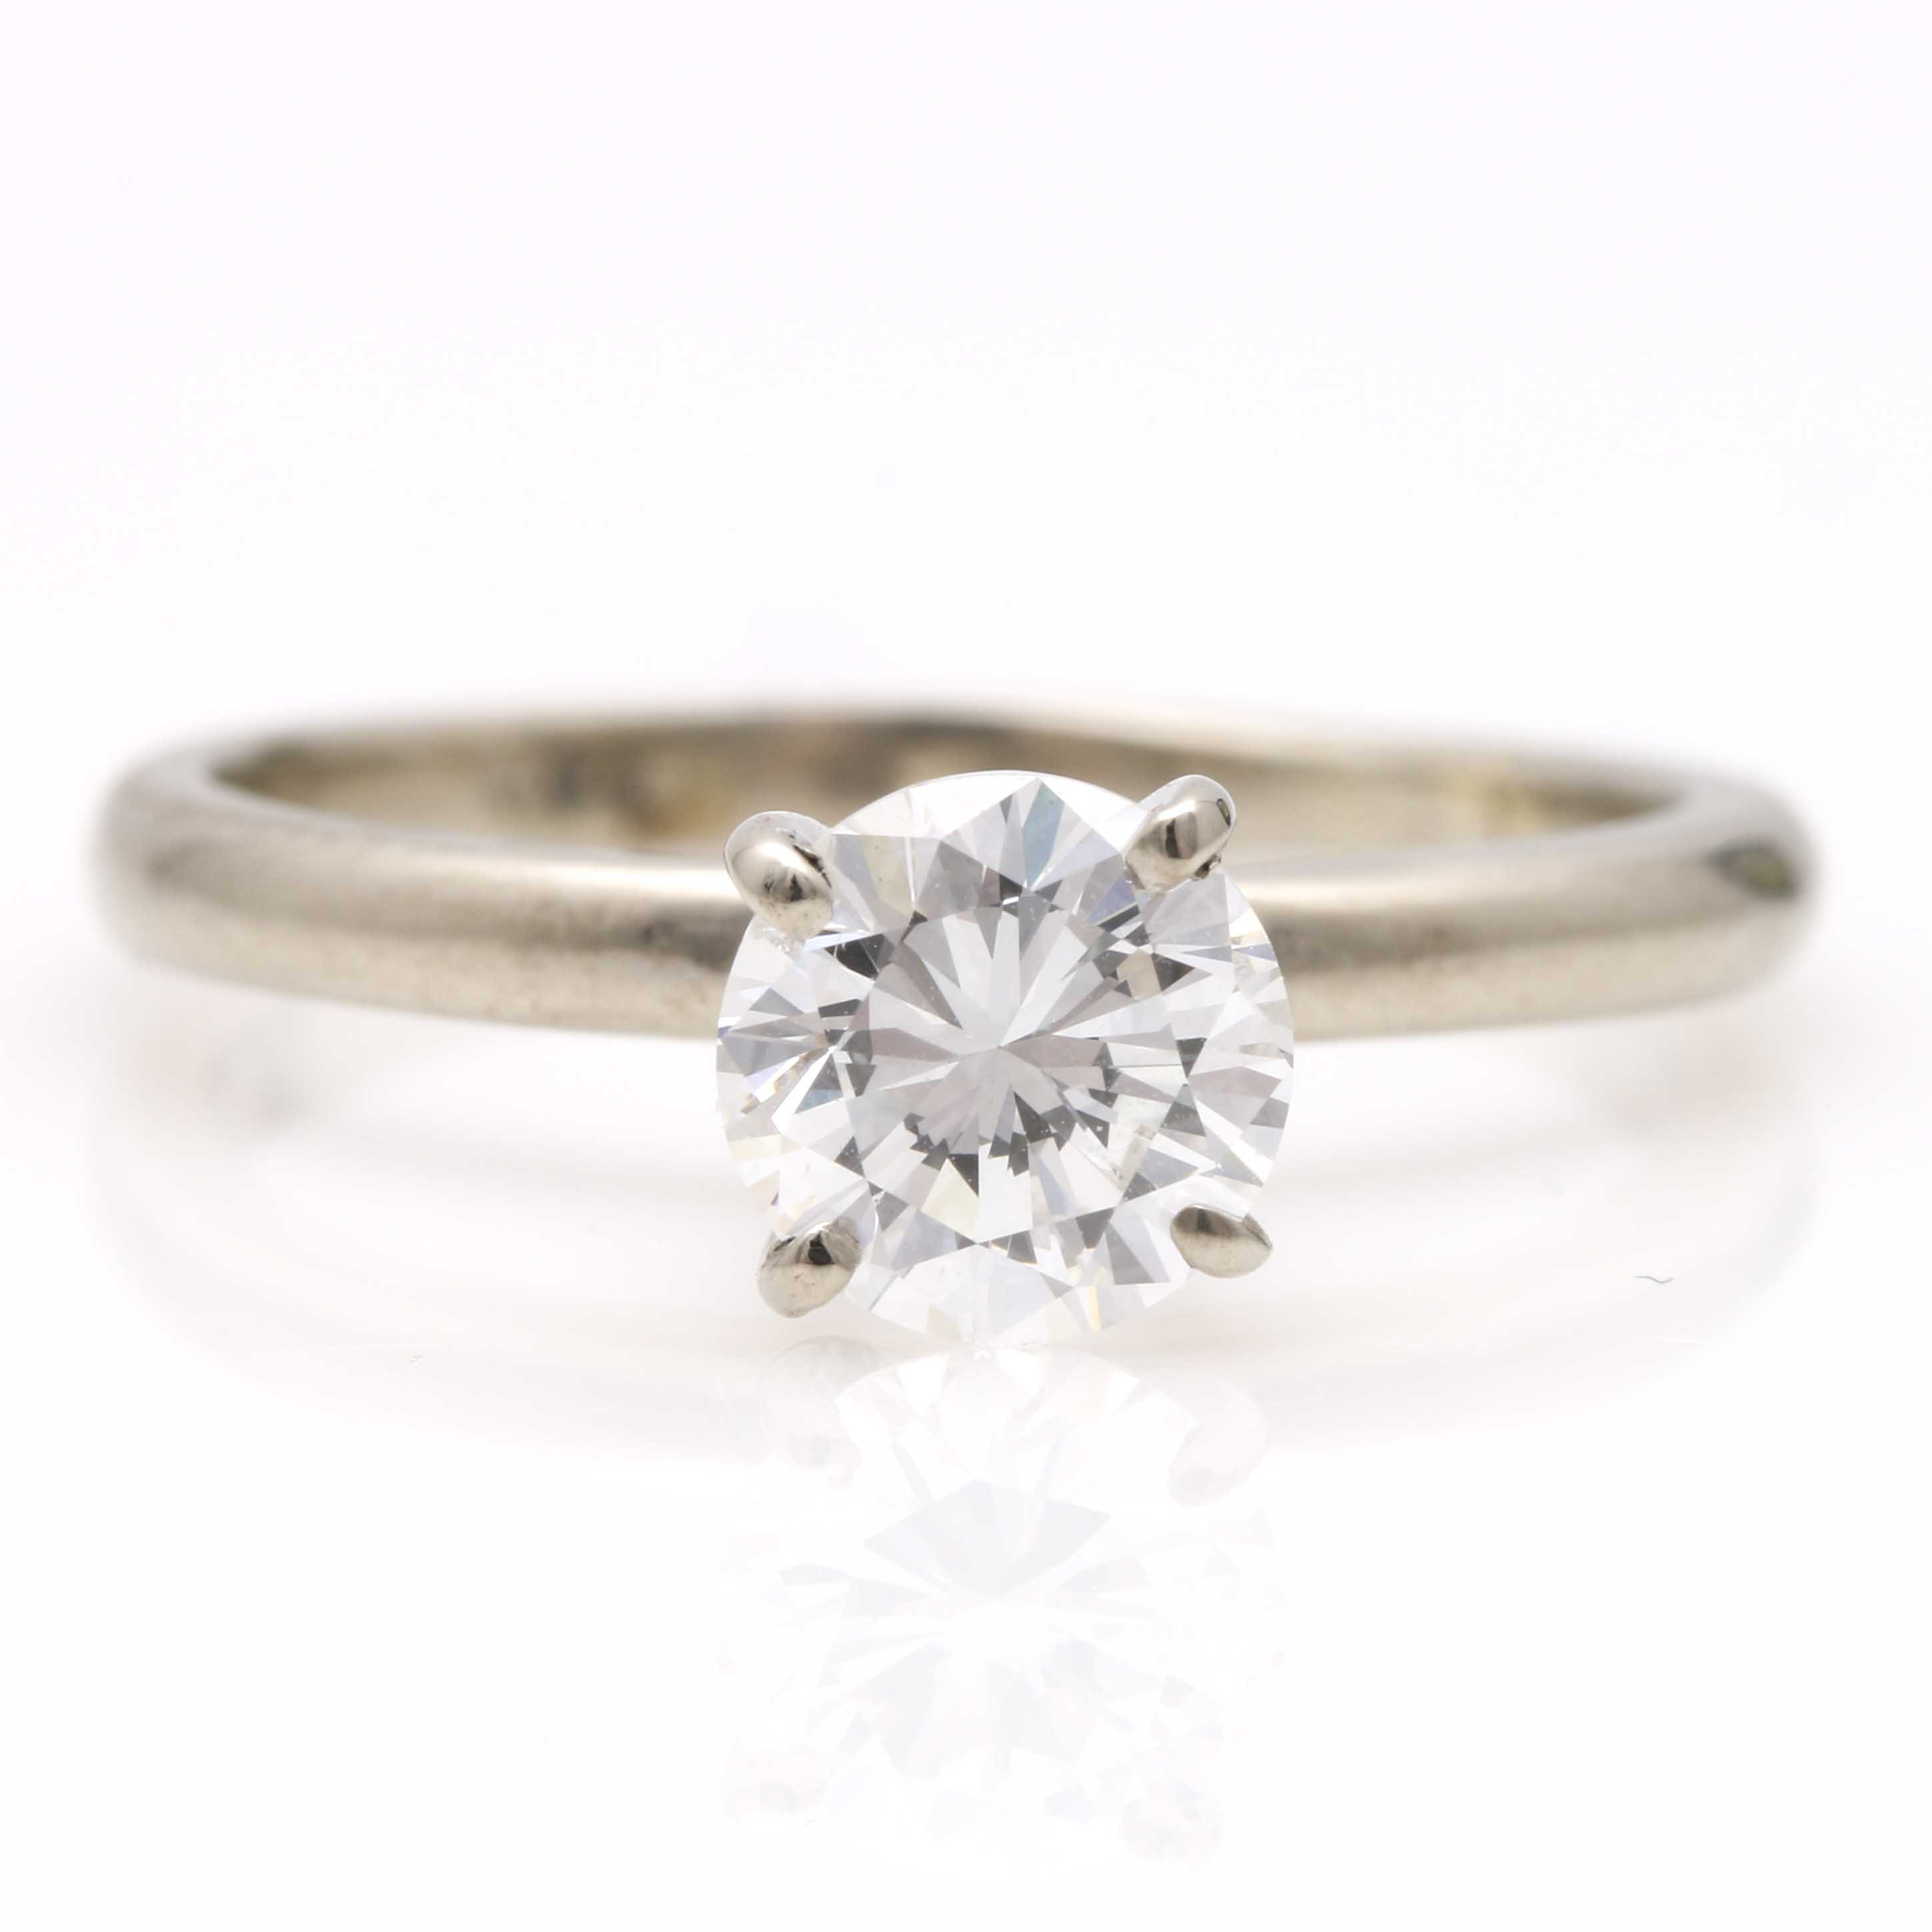 14K White Gold GIA Certified Diamond Solitaire Ring